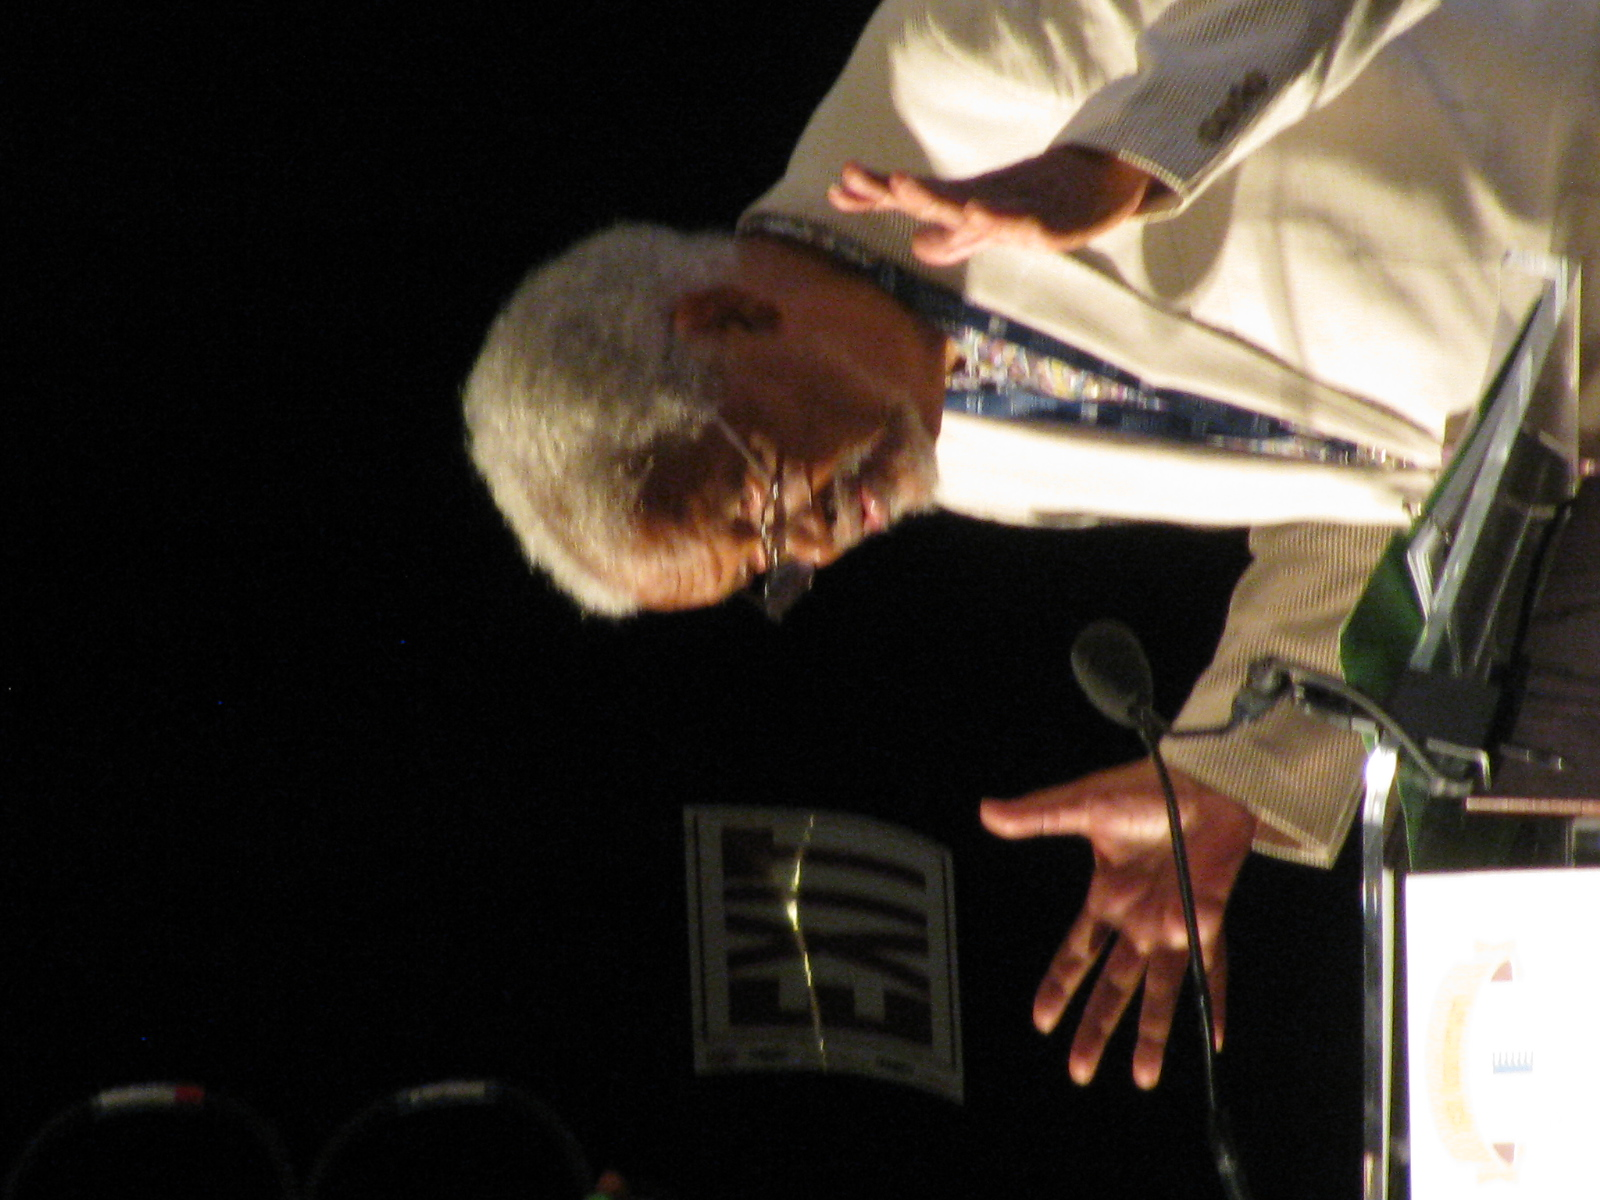 ishmael reed essay For my part, when i was given the floor i read some excerpts from a critical treatise i wrote on ishmael that was published in the prestigious journal the world and i titled the gospel according to ishmael - the essay explores the esthetic philosophy and literary technique of mr reed, and offers an assessment of the extent to.